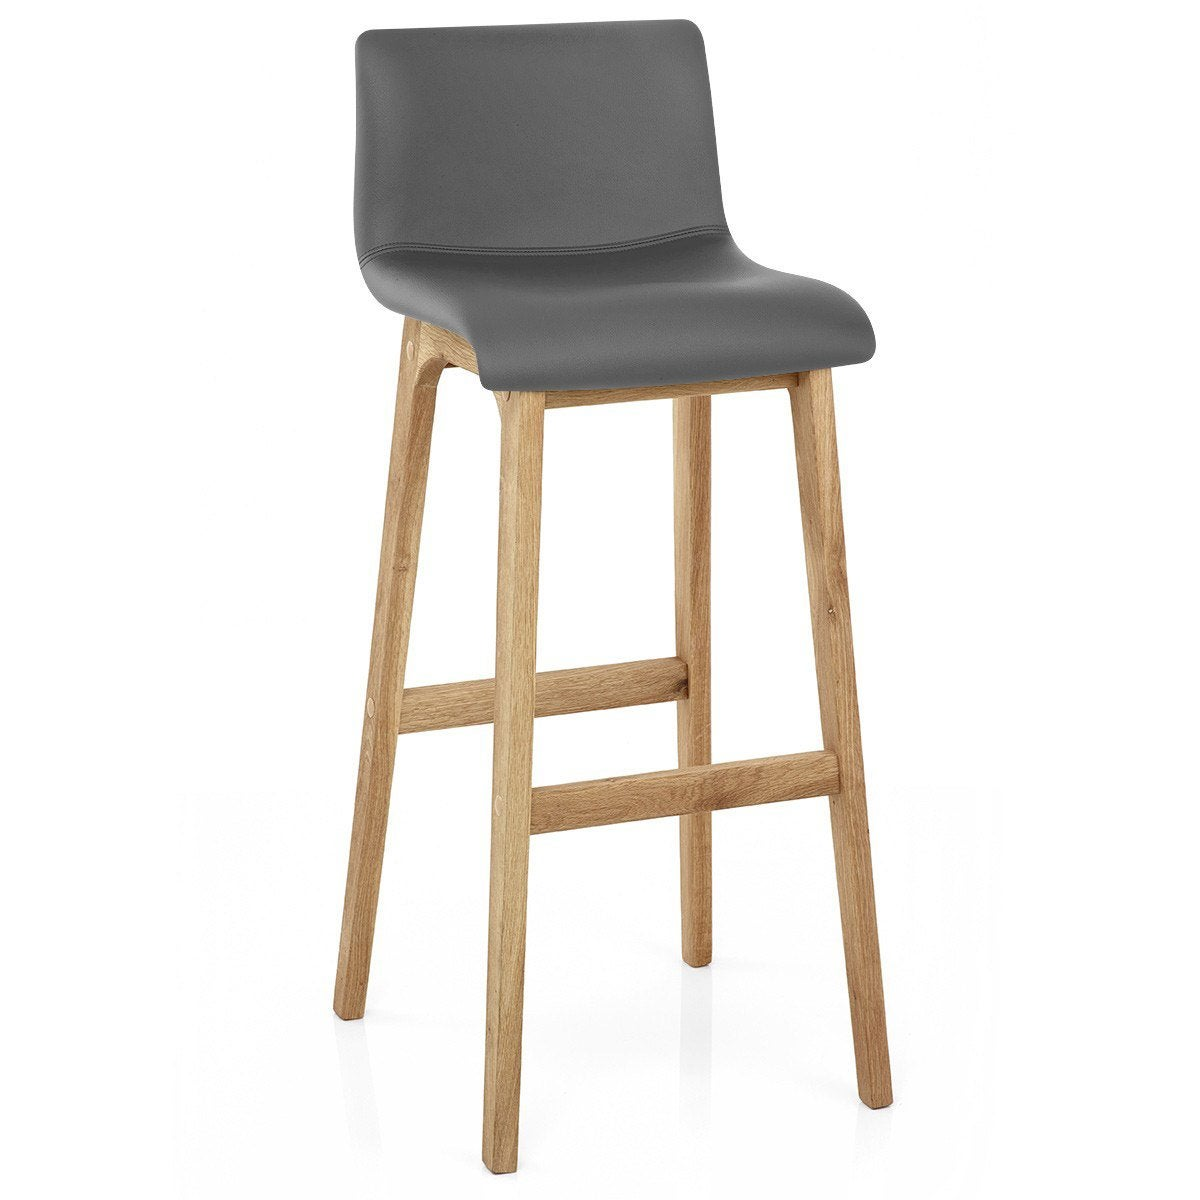 Tabouret de bar, simili cuir, gris, Wave